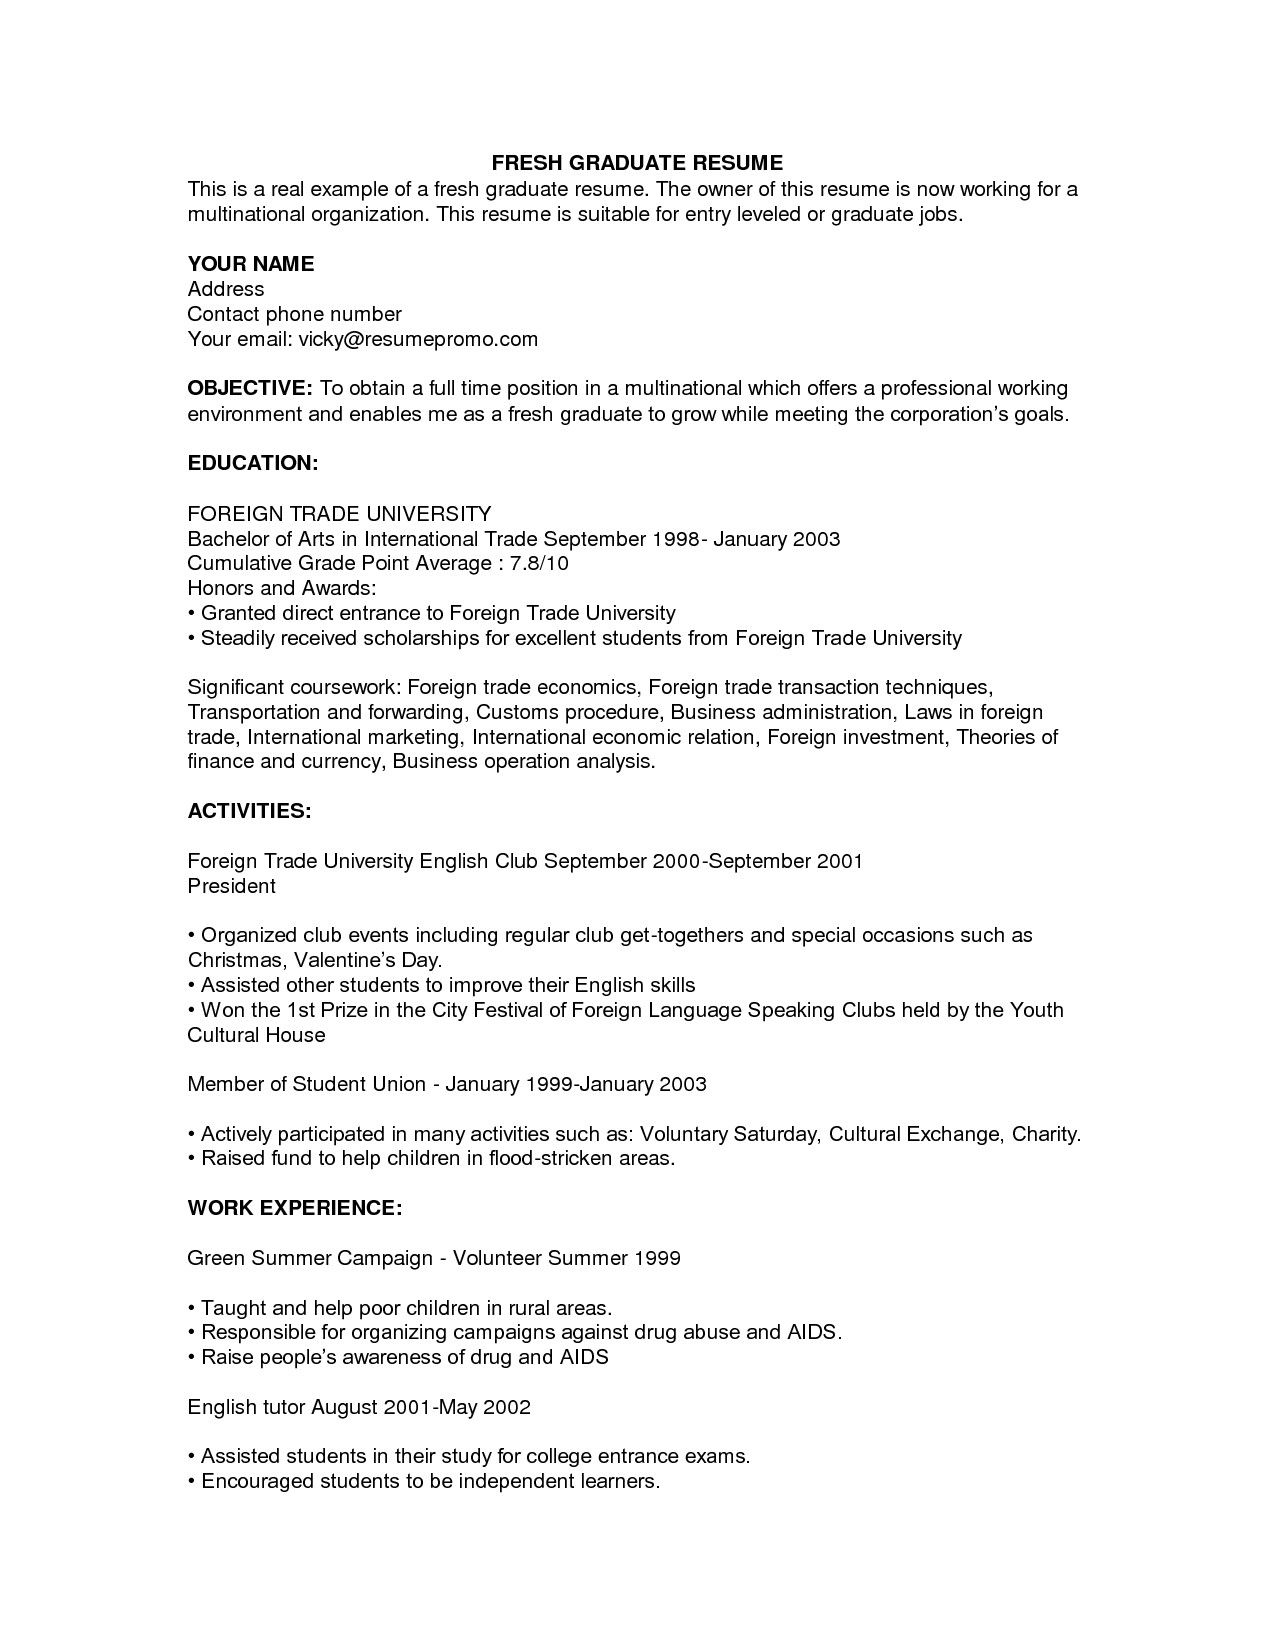 An Example Of A Good Resume Resume Examples And Free Resume Builder